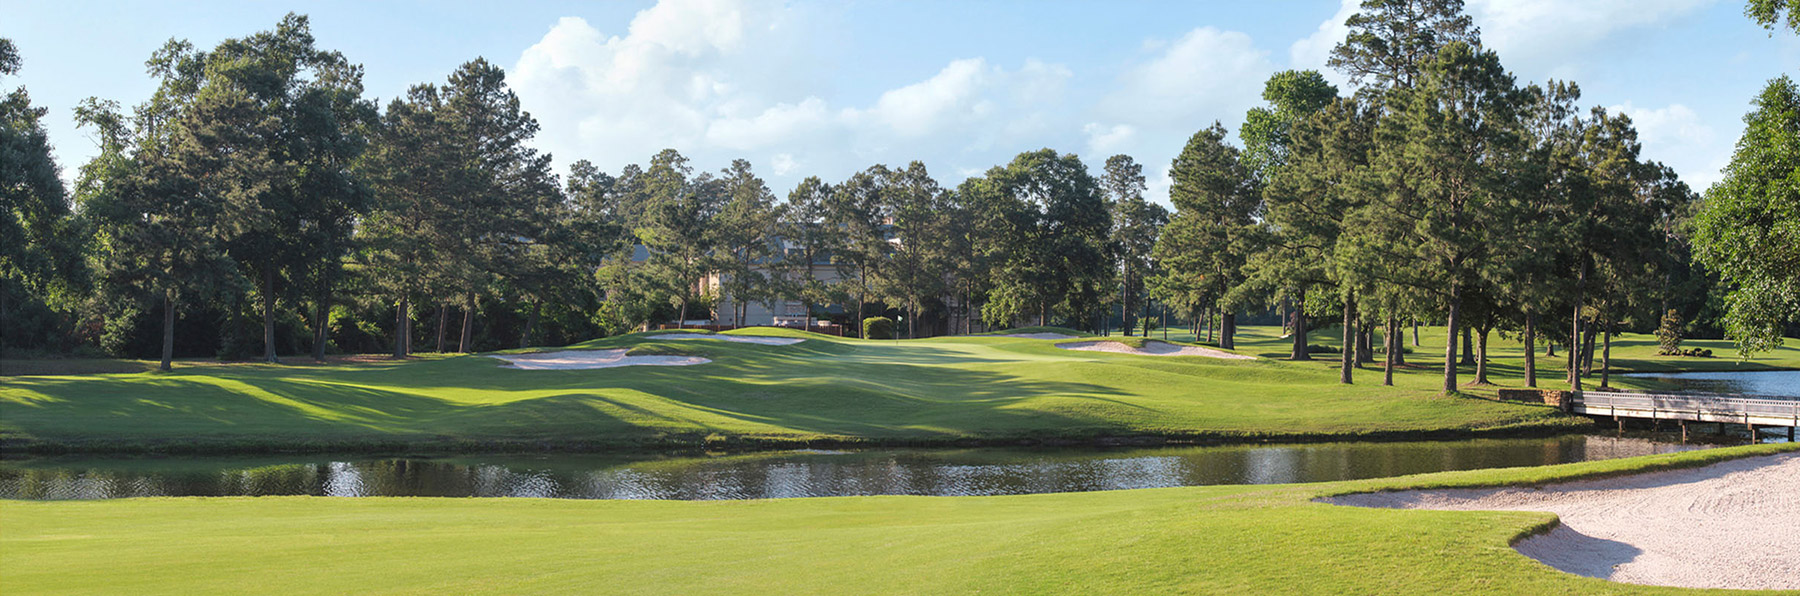 Woodlands-Palmer King Course No. 9 | Stonehouse Golf